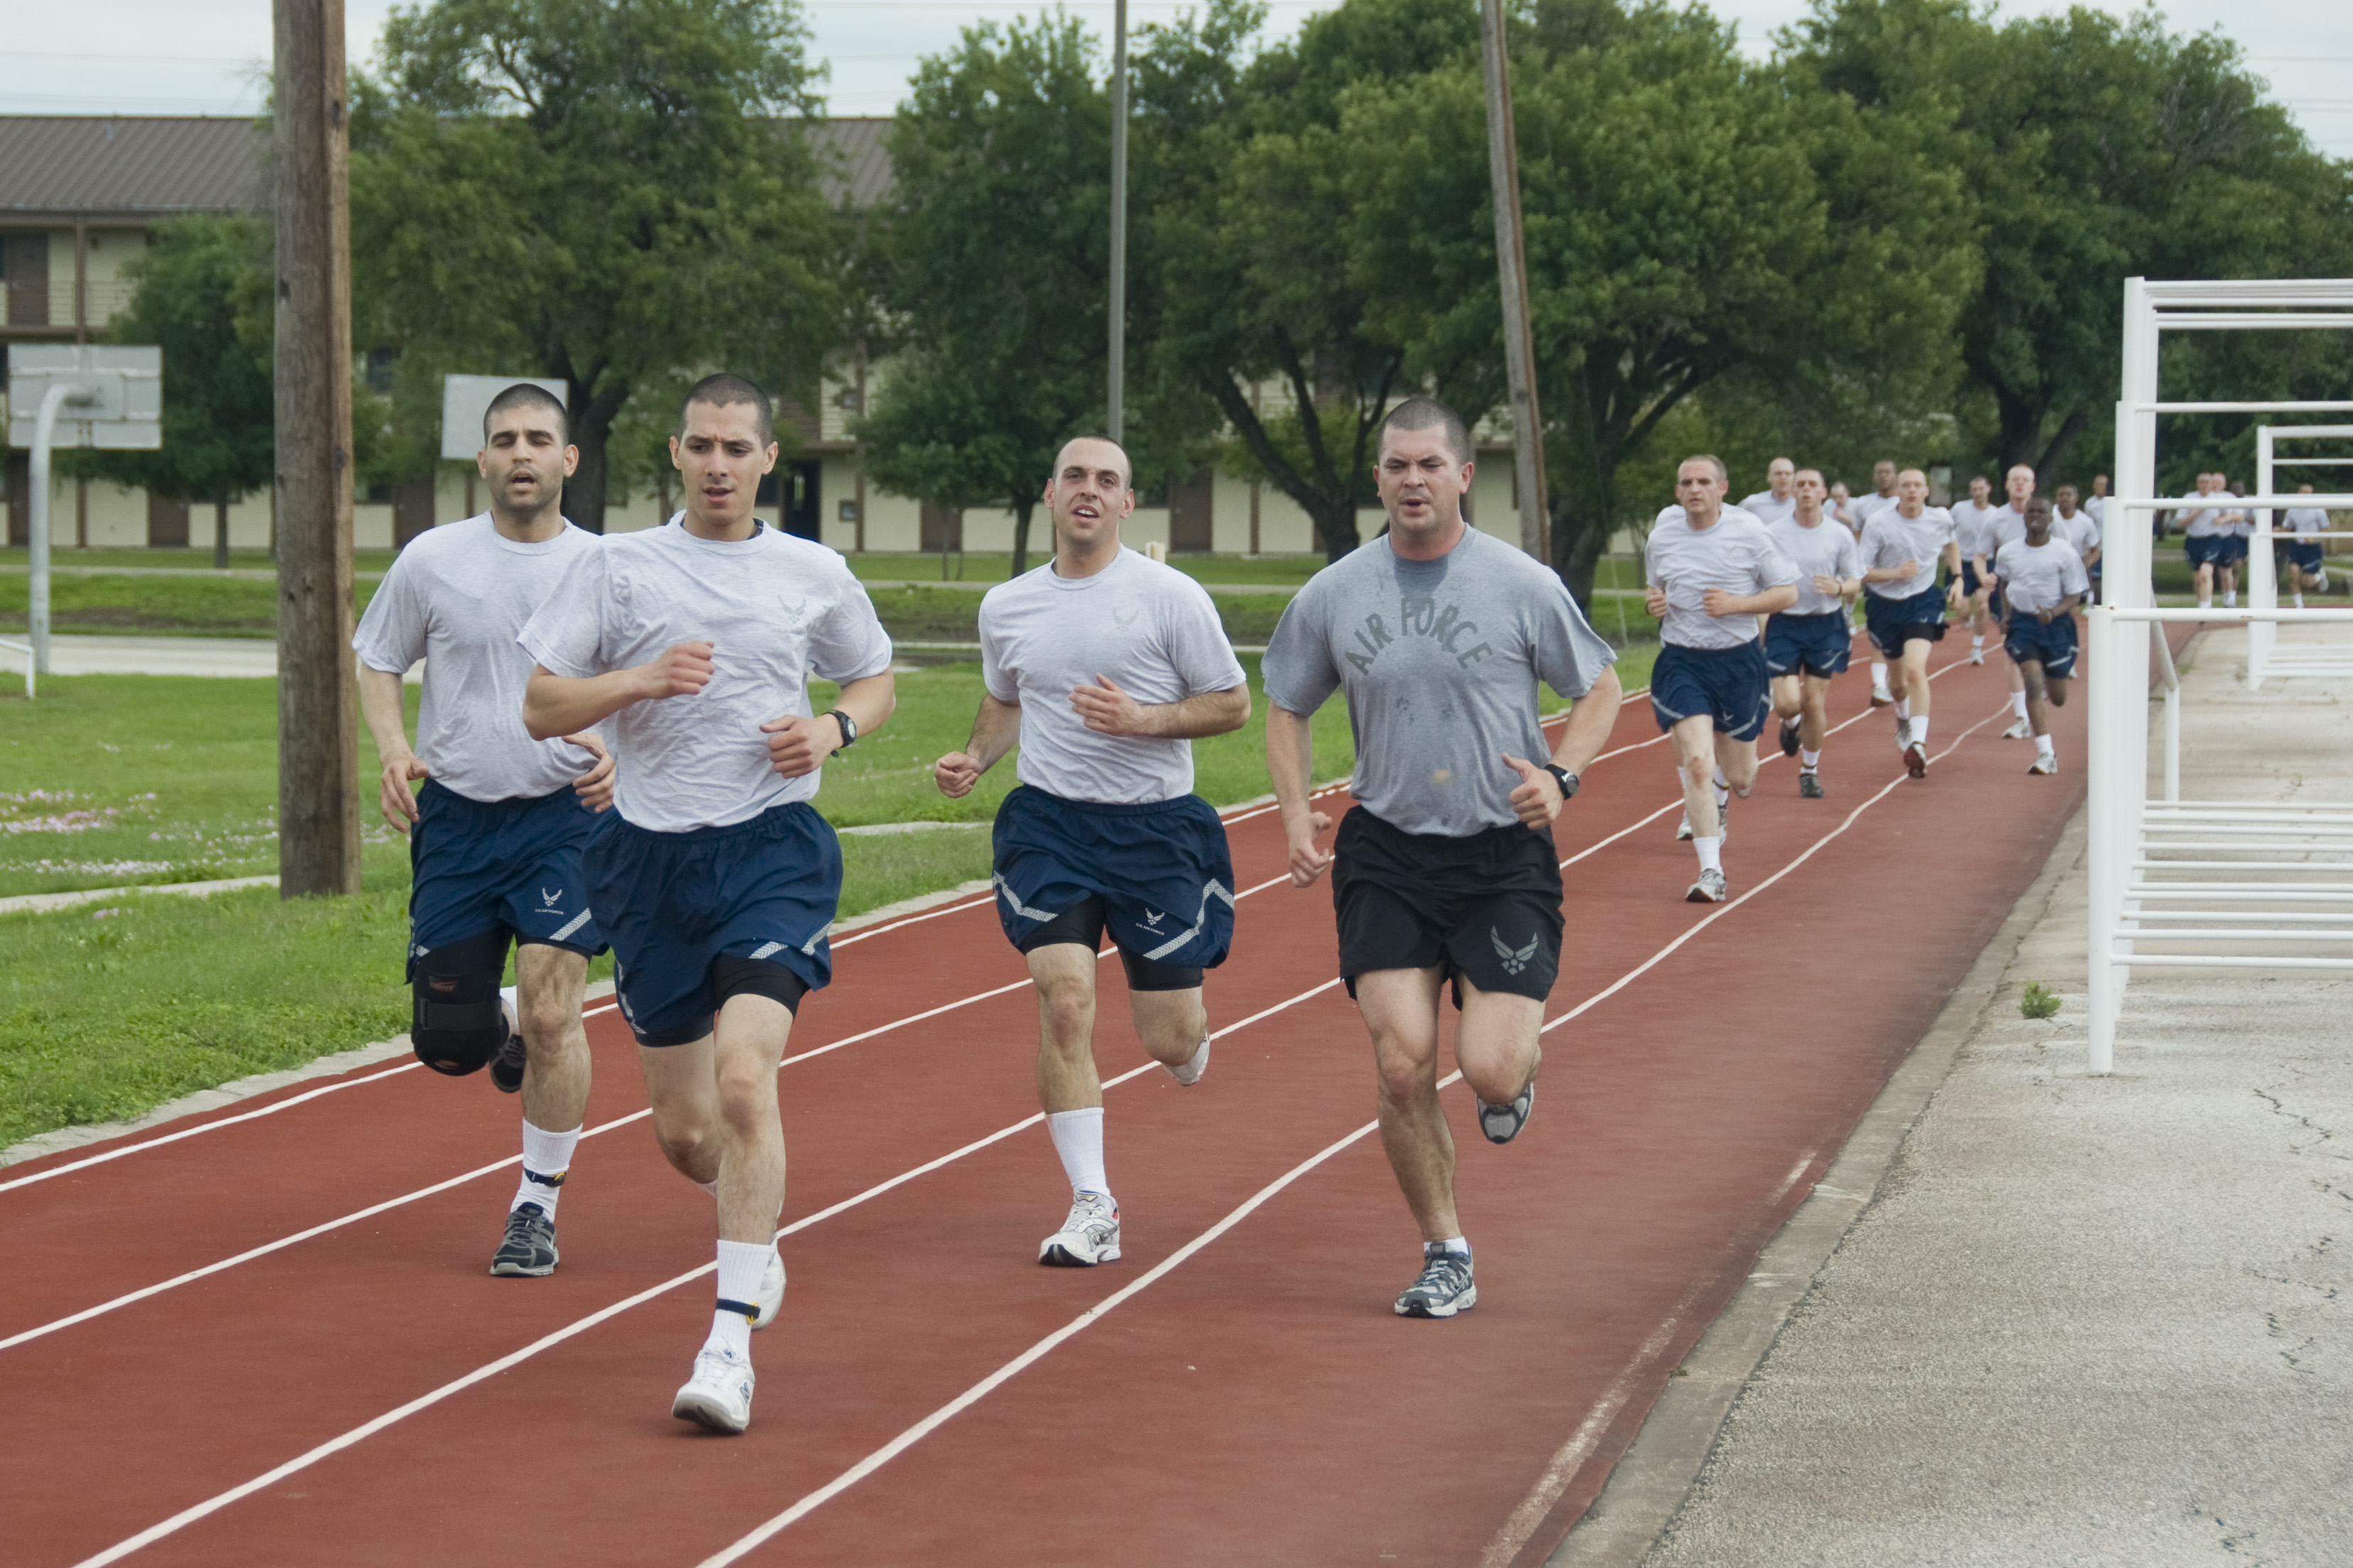 Report: USAF Discovers 19 Running Tracks That Are Too Long